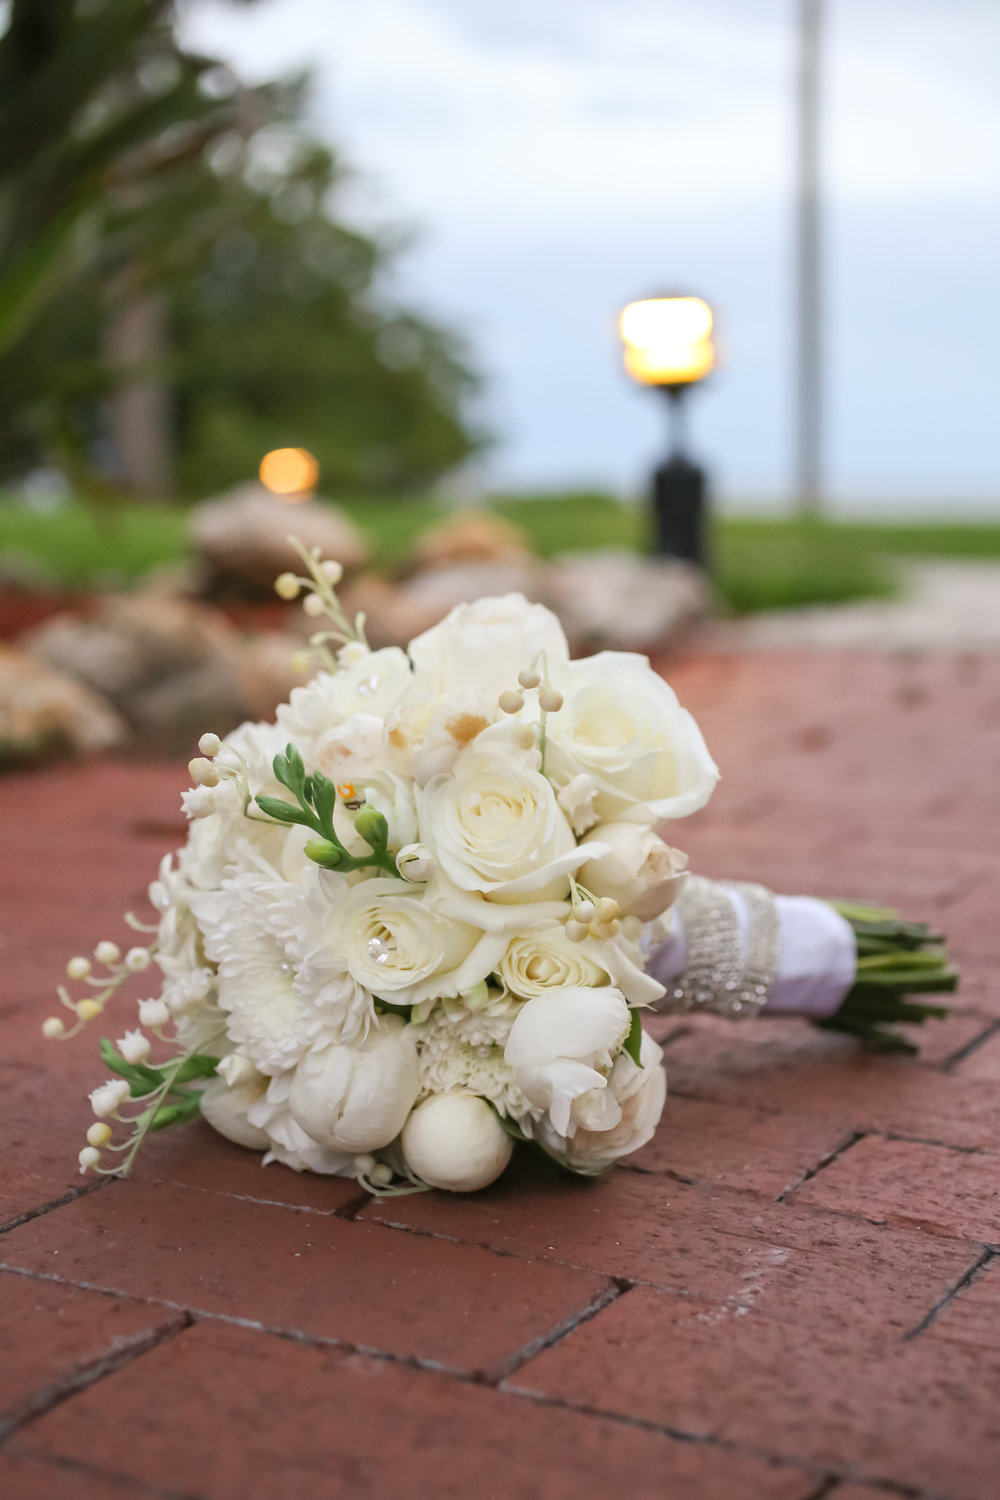 An ivory and white bouquet made up of roses, peonies, and berries was accented with rhinestones.